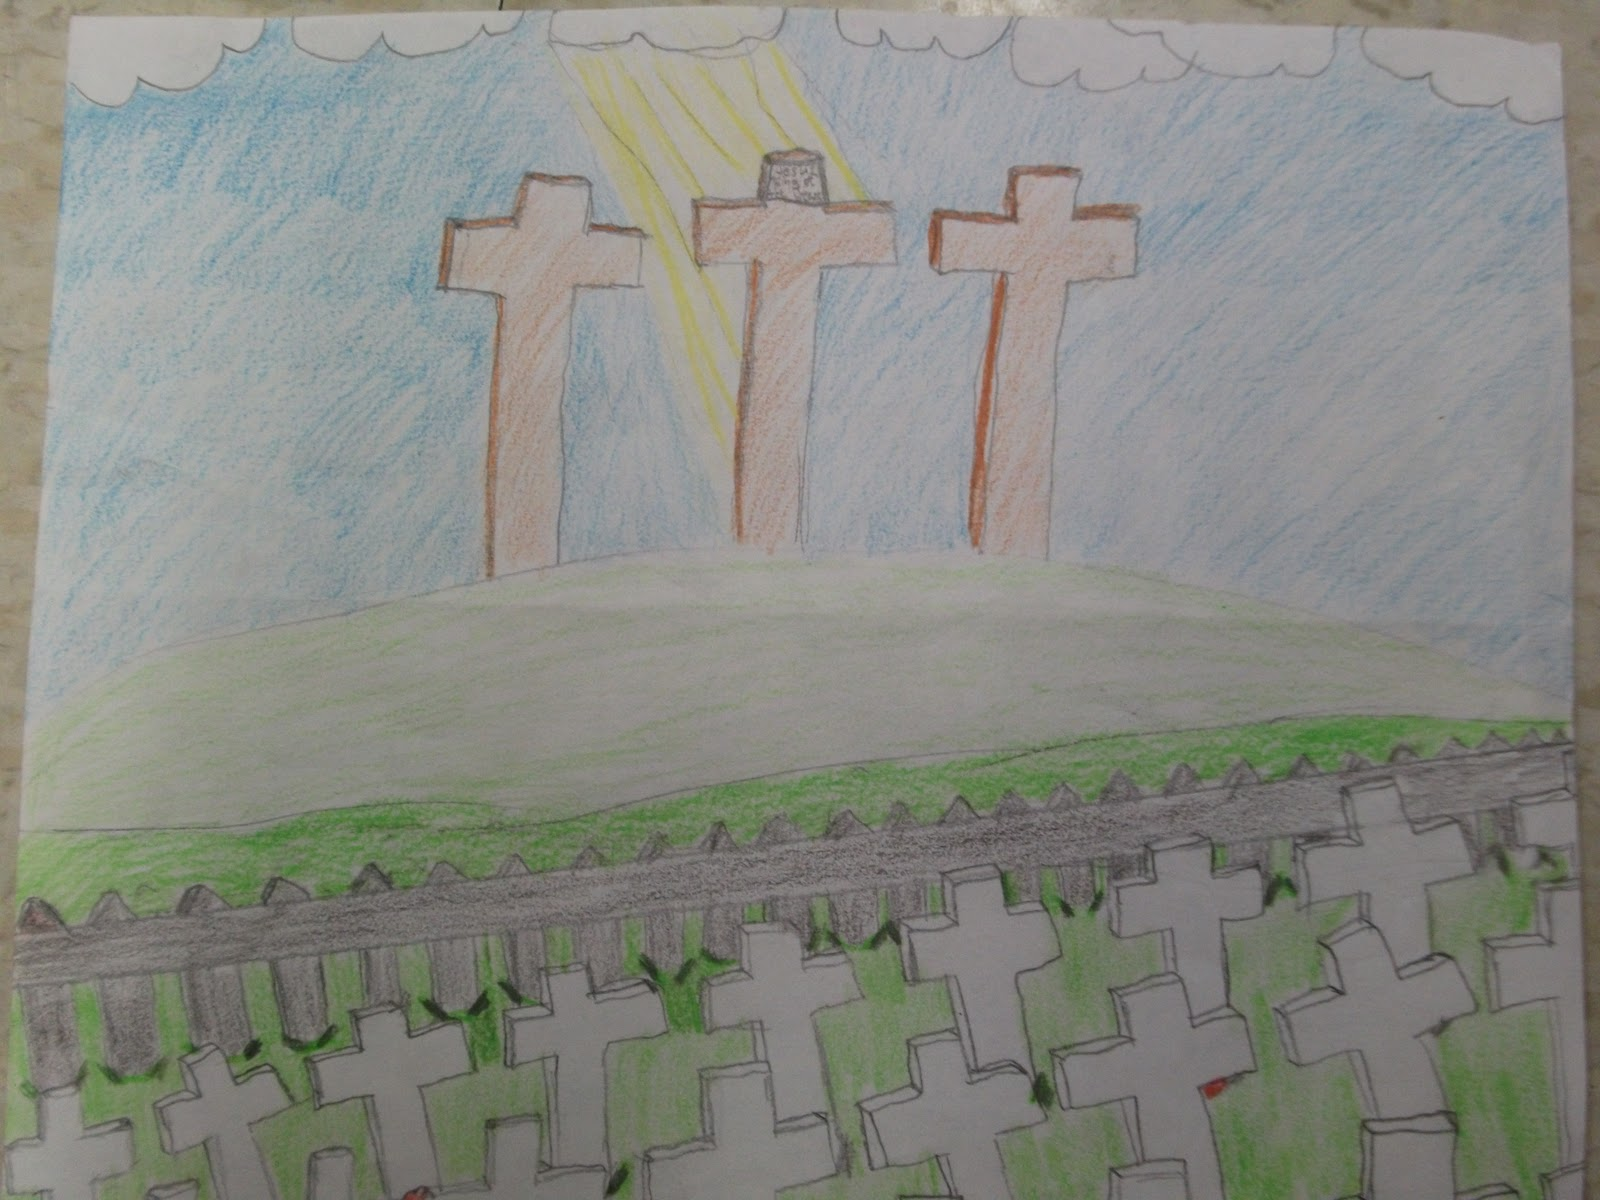 grade 7 remembrance day essays Ctf 7-1 and 7-2 forms ctf/fa reflection detecting bias family literacy day field trip and digital citizenship forms friday, april 21 friday, april 28 friday.